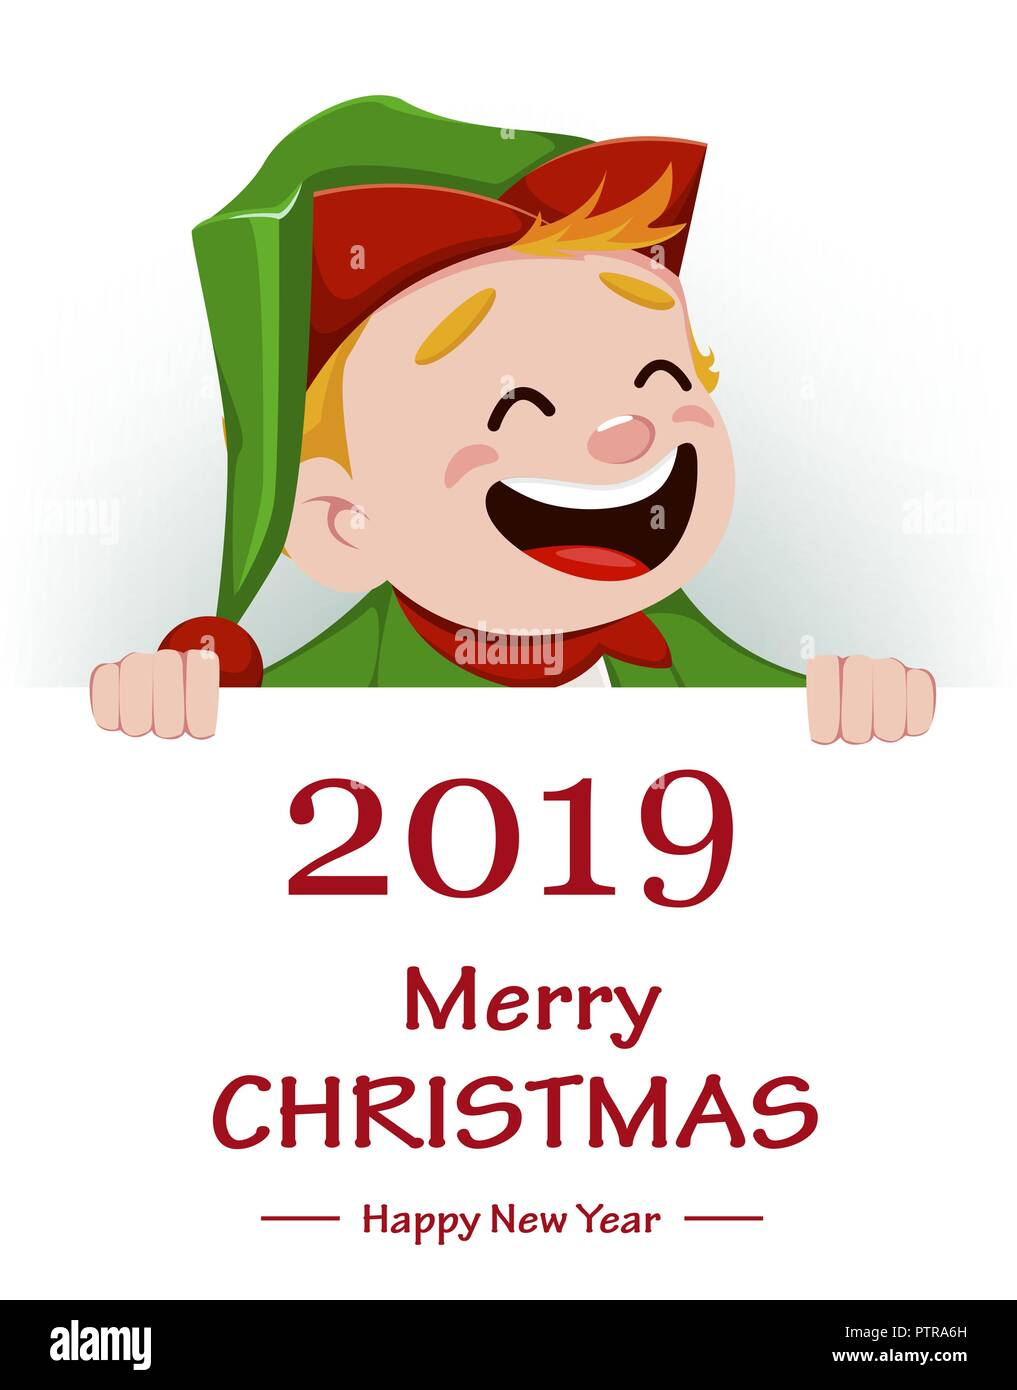 Merry christmas funny santa claus helper cheerful cute elf merry christmas funny santa claus helper cheerful cute elf cartoon character holding placard with greetings usable for greeting card banner post m4hsunfo